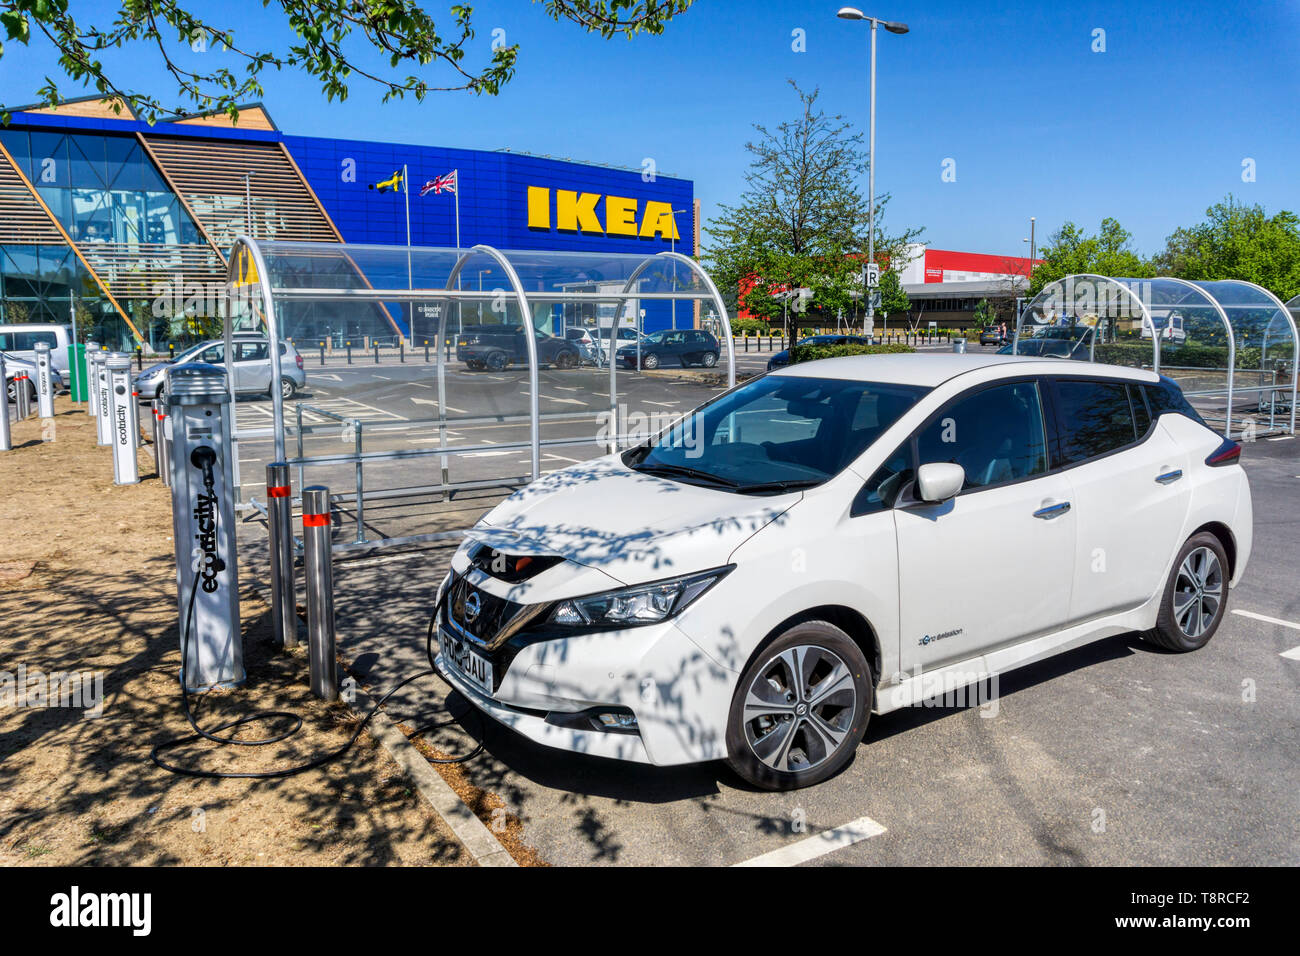 A Nissan LEAF electric car charging at an Ecotricity charging point outside the large IKEA store on the Greenwich Peninsula. - Stock Image